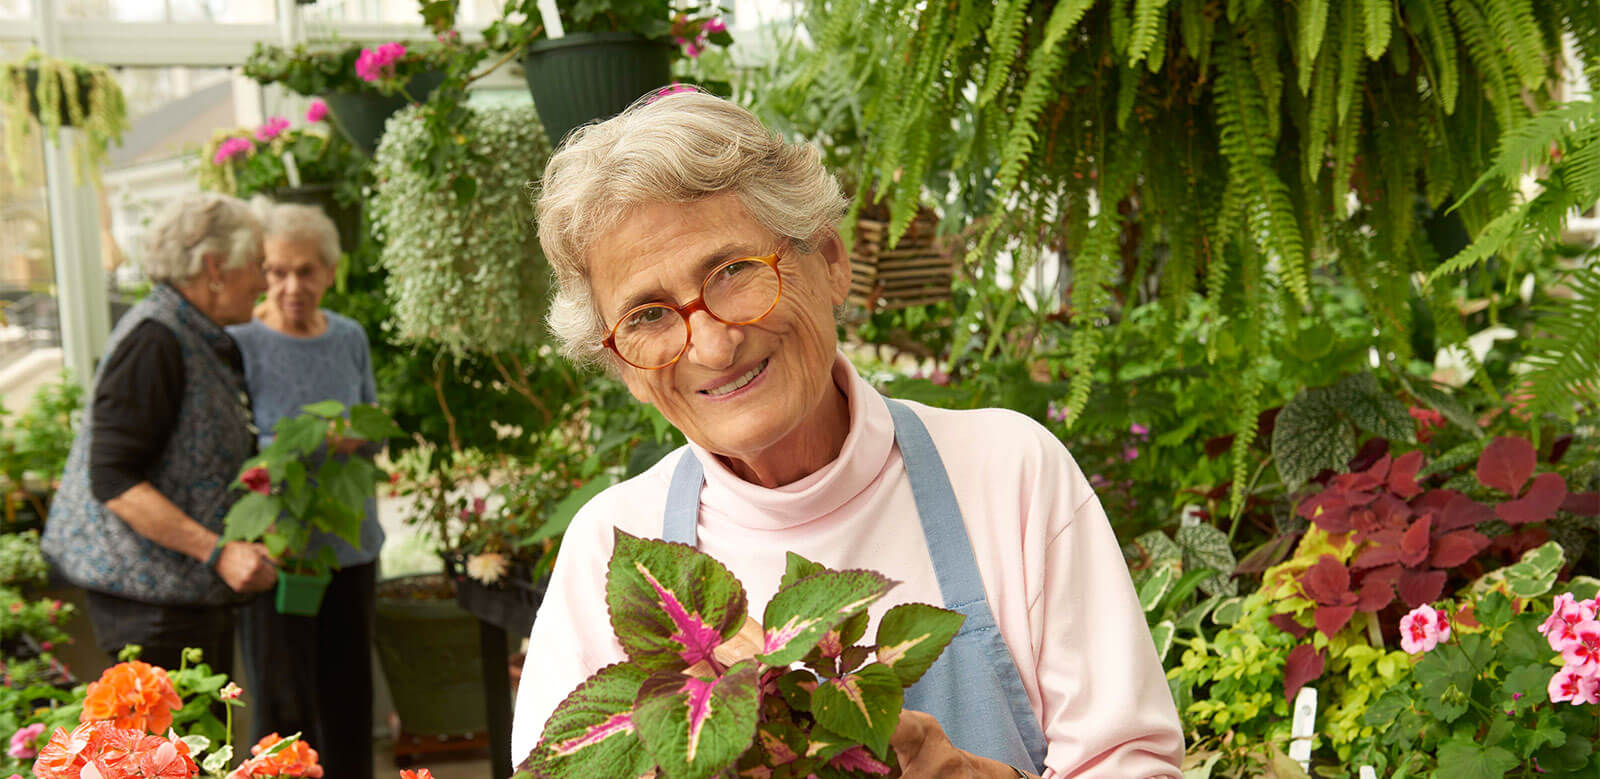 Residents prepare and care for plants at the Foulkeways Conservatory